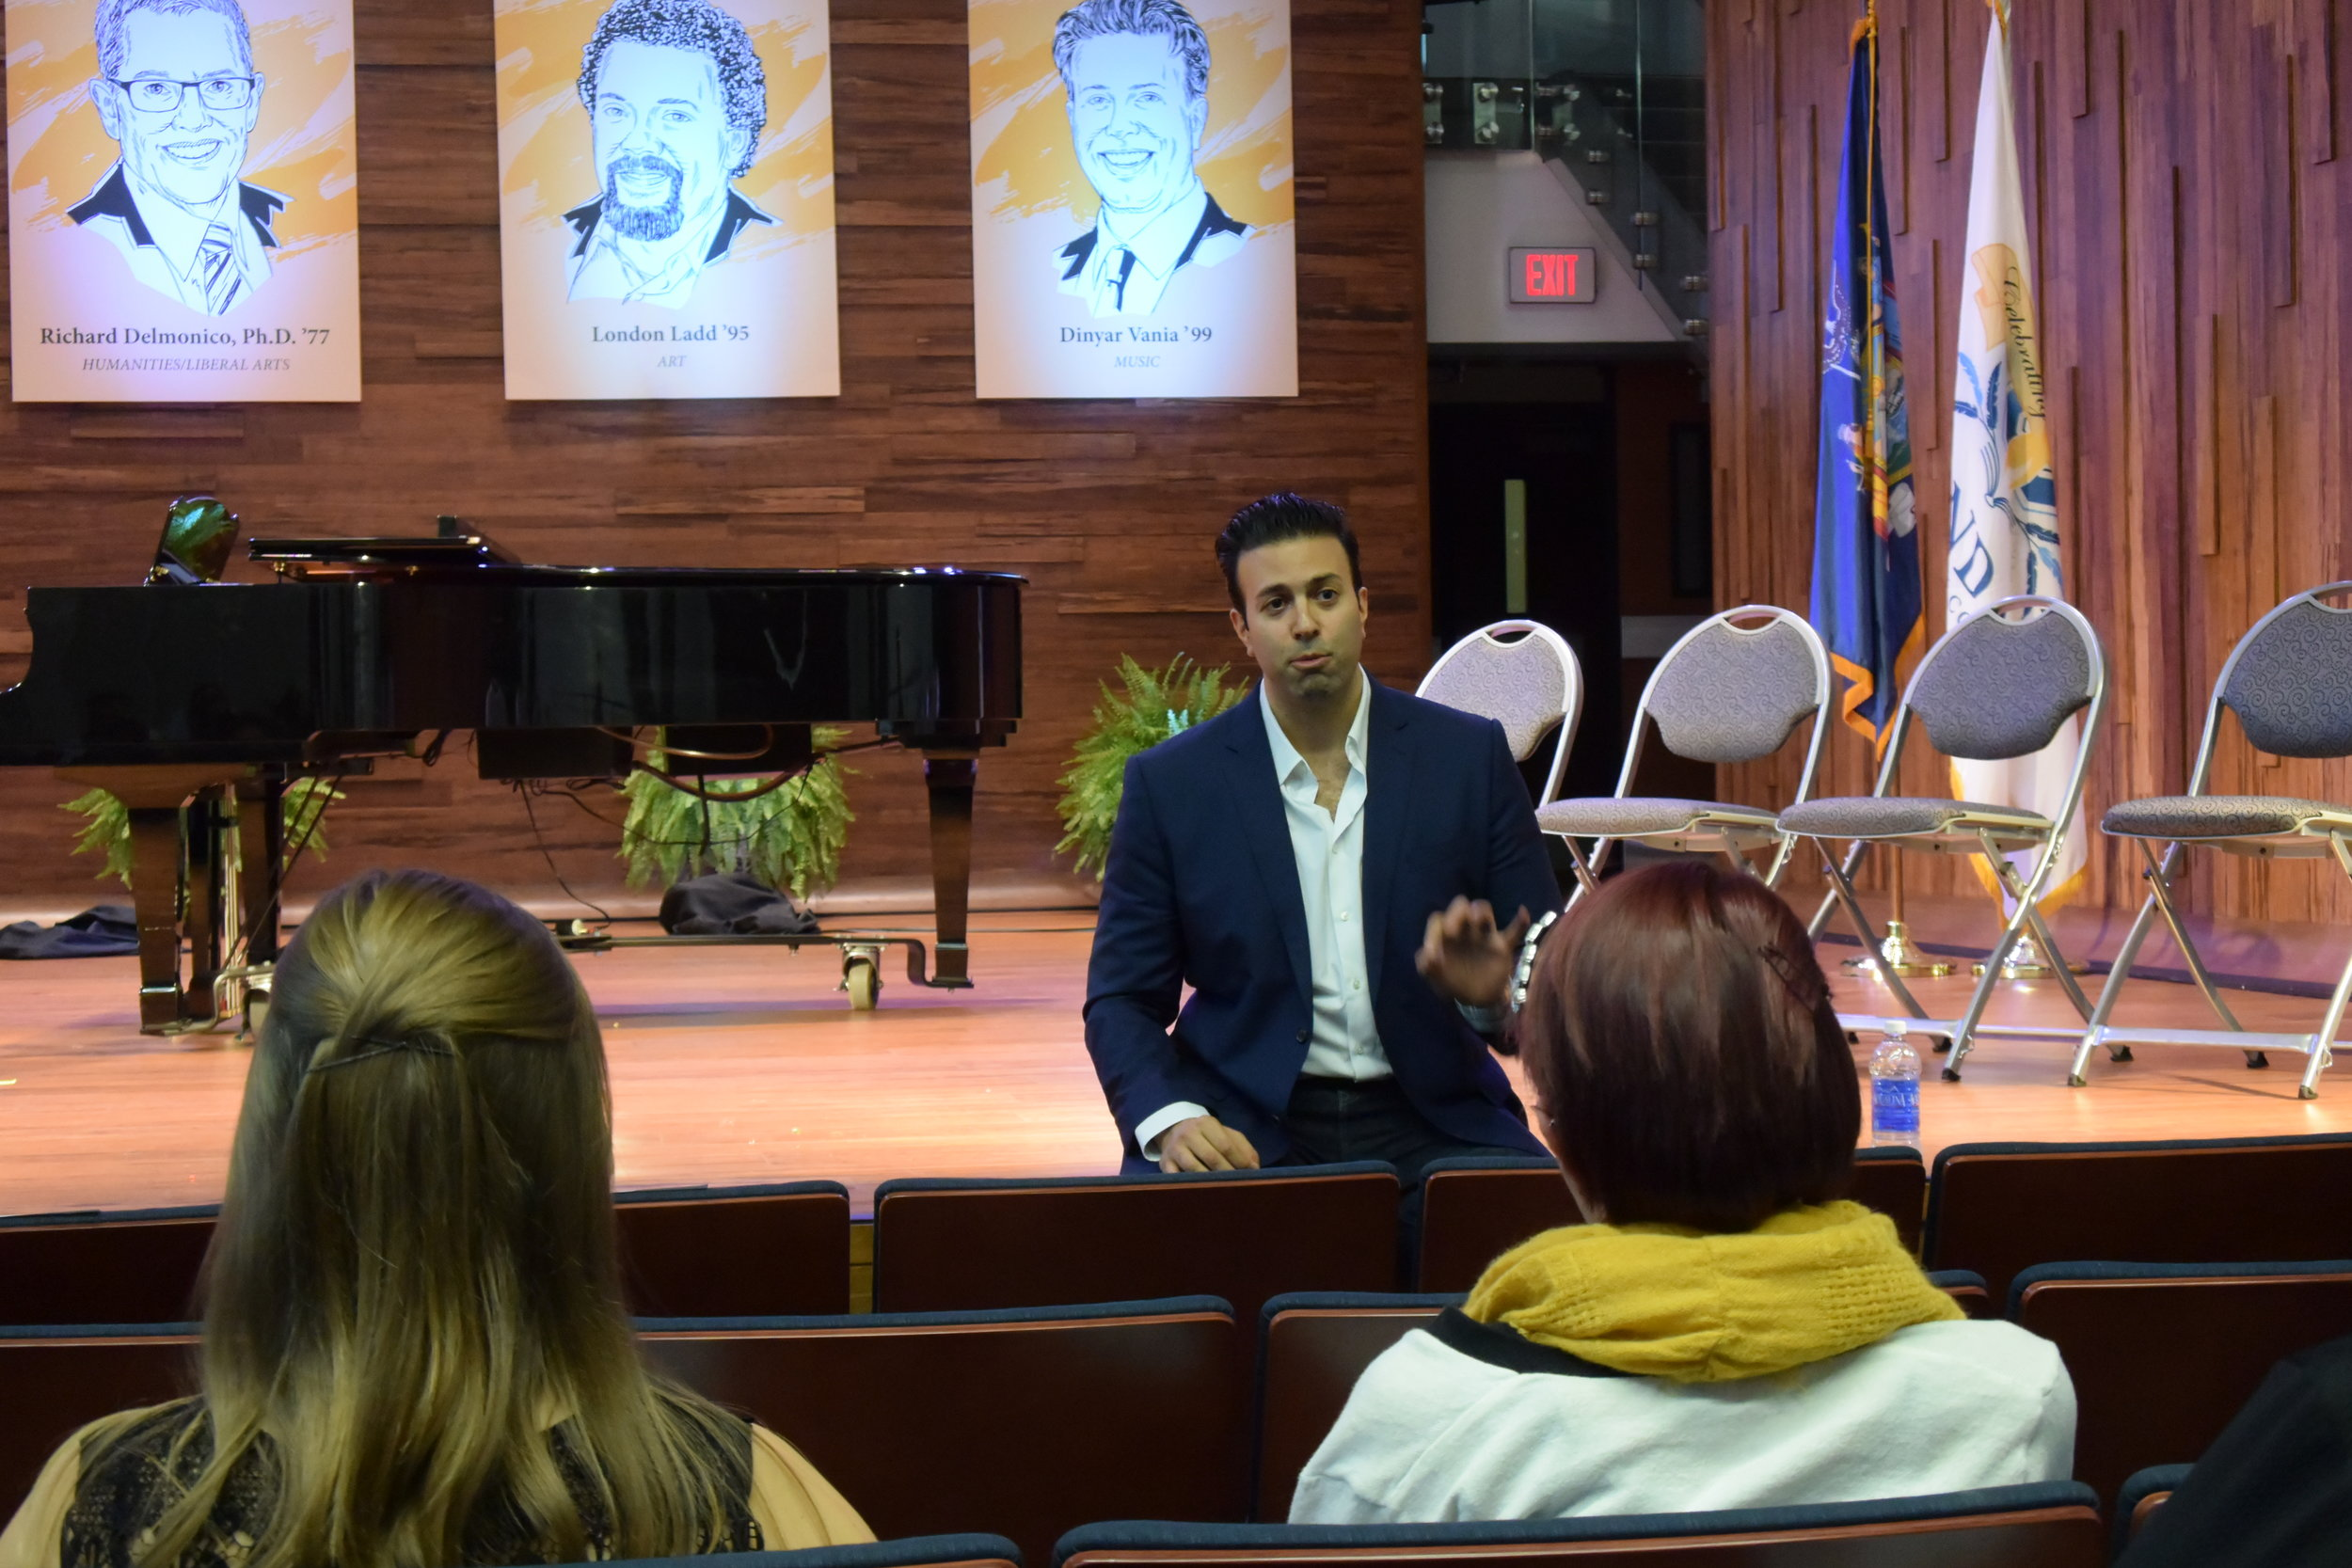 Speaking to students before his Masterclass in Recital Hall